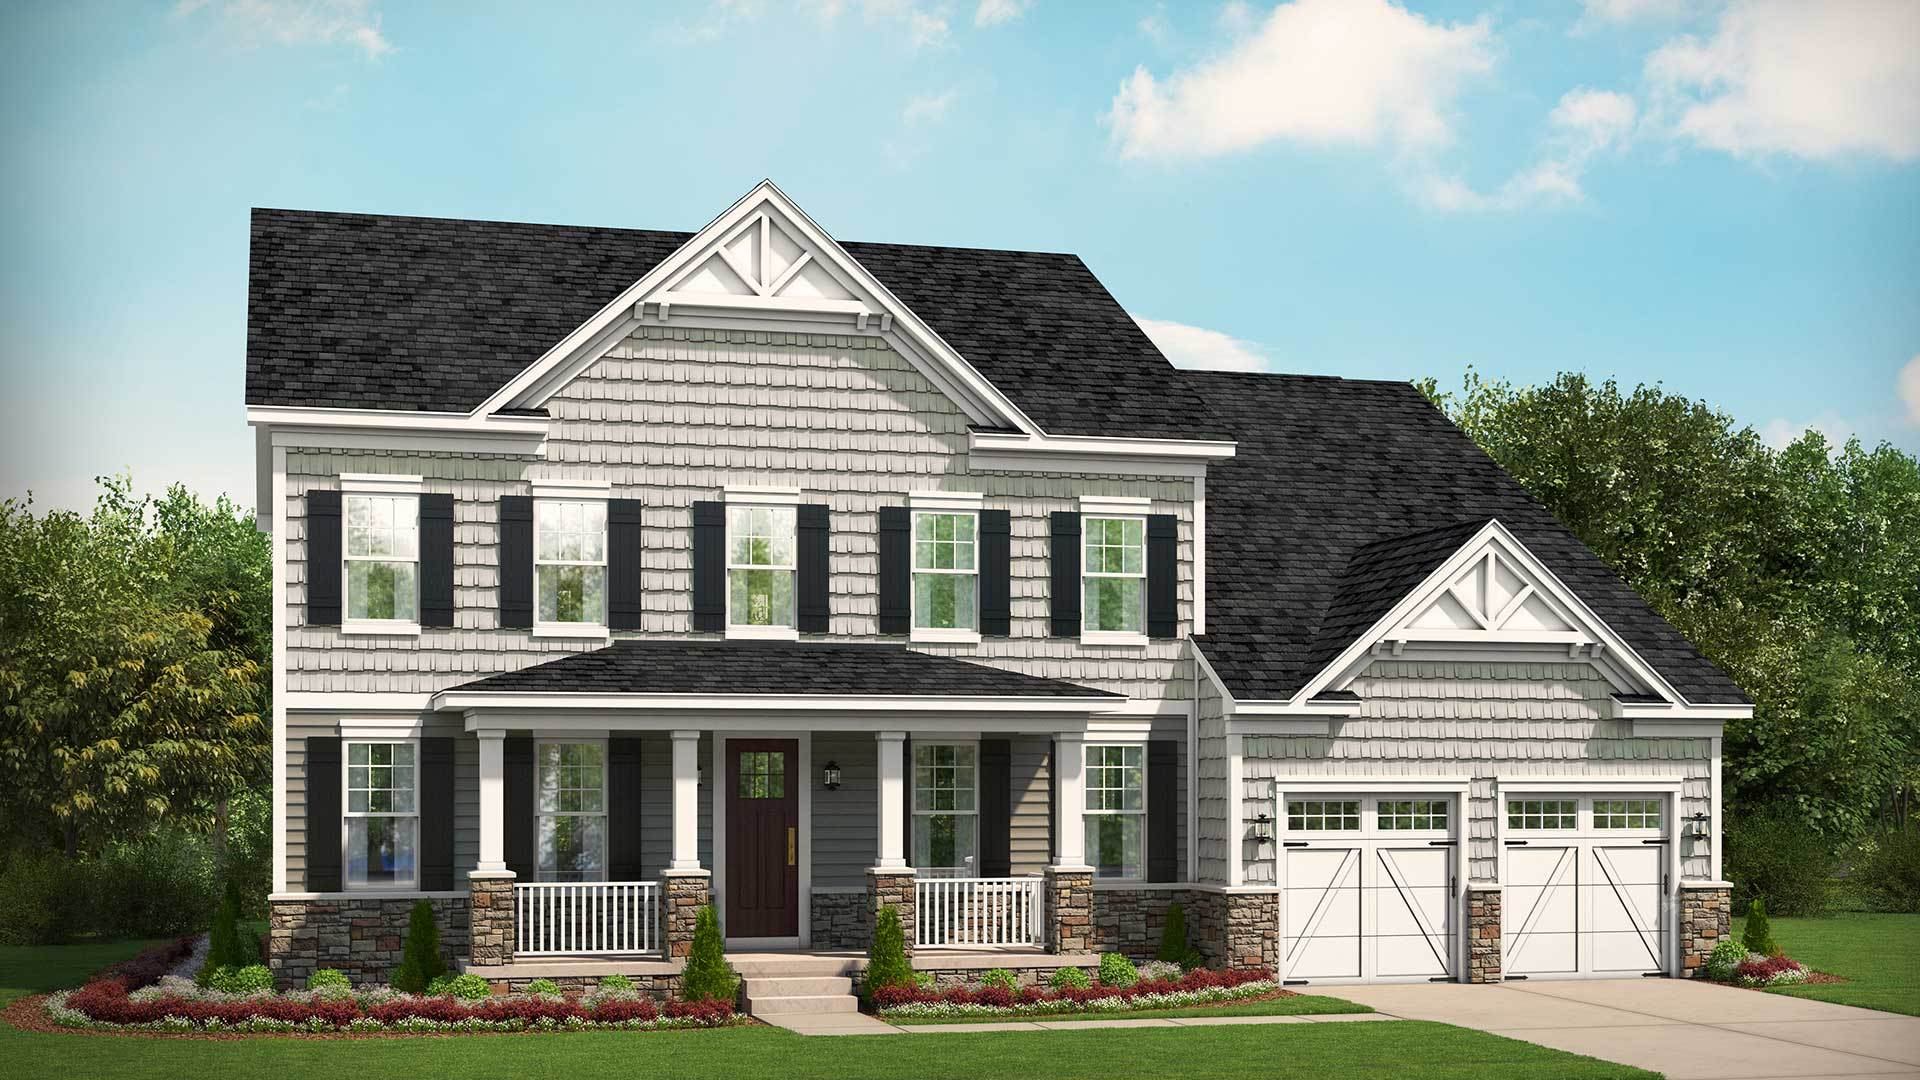 Stanley Martin Homes Ethan 39 S Meadow Colton Ii 1366865 Raleigh Nc New Home For Sale Homegain